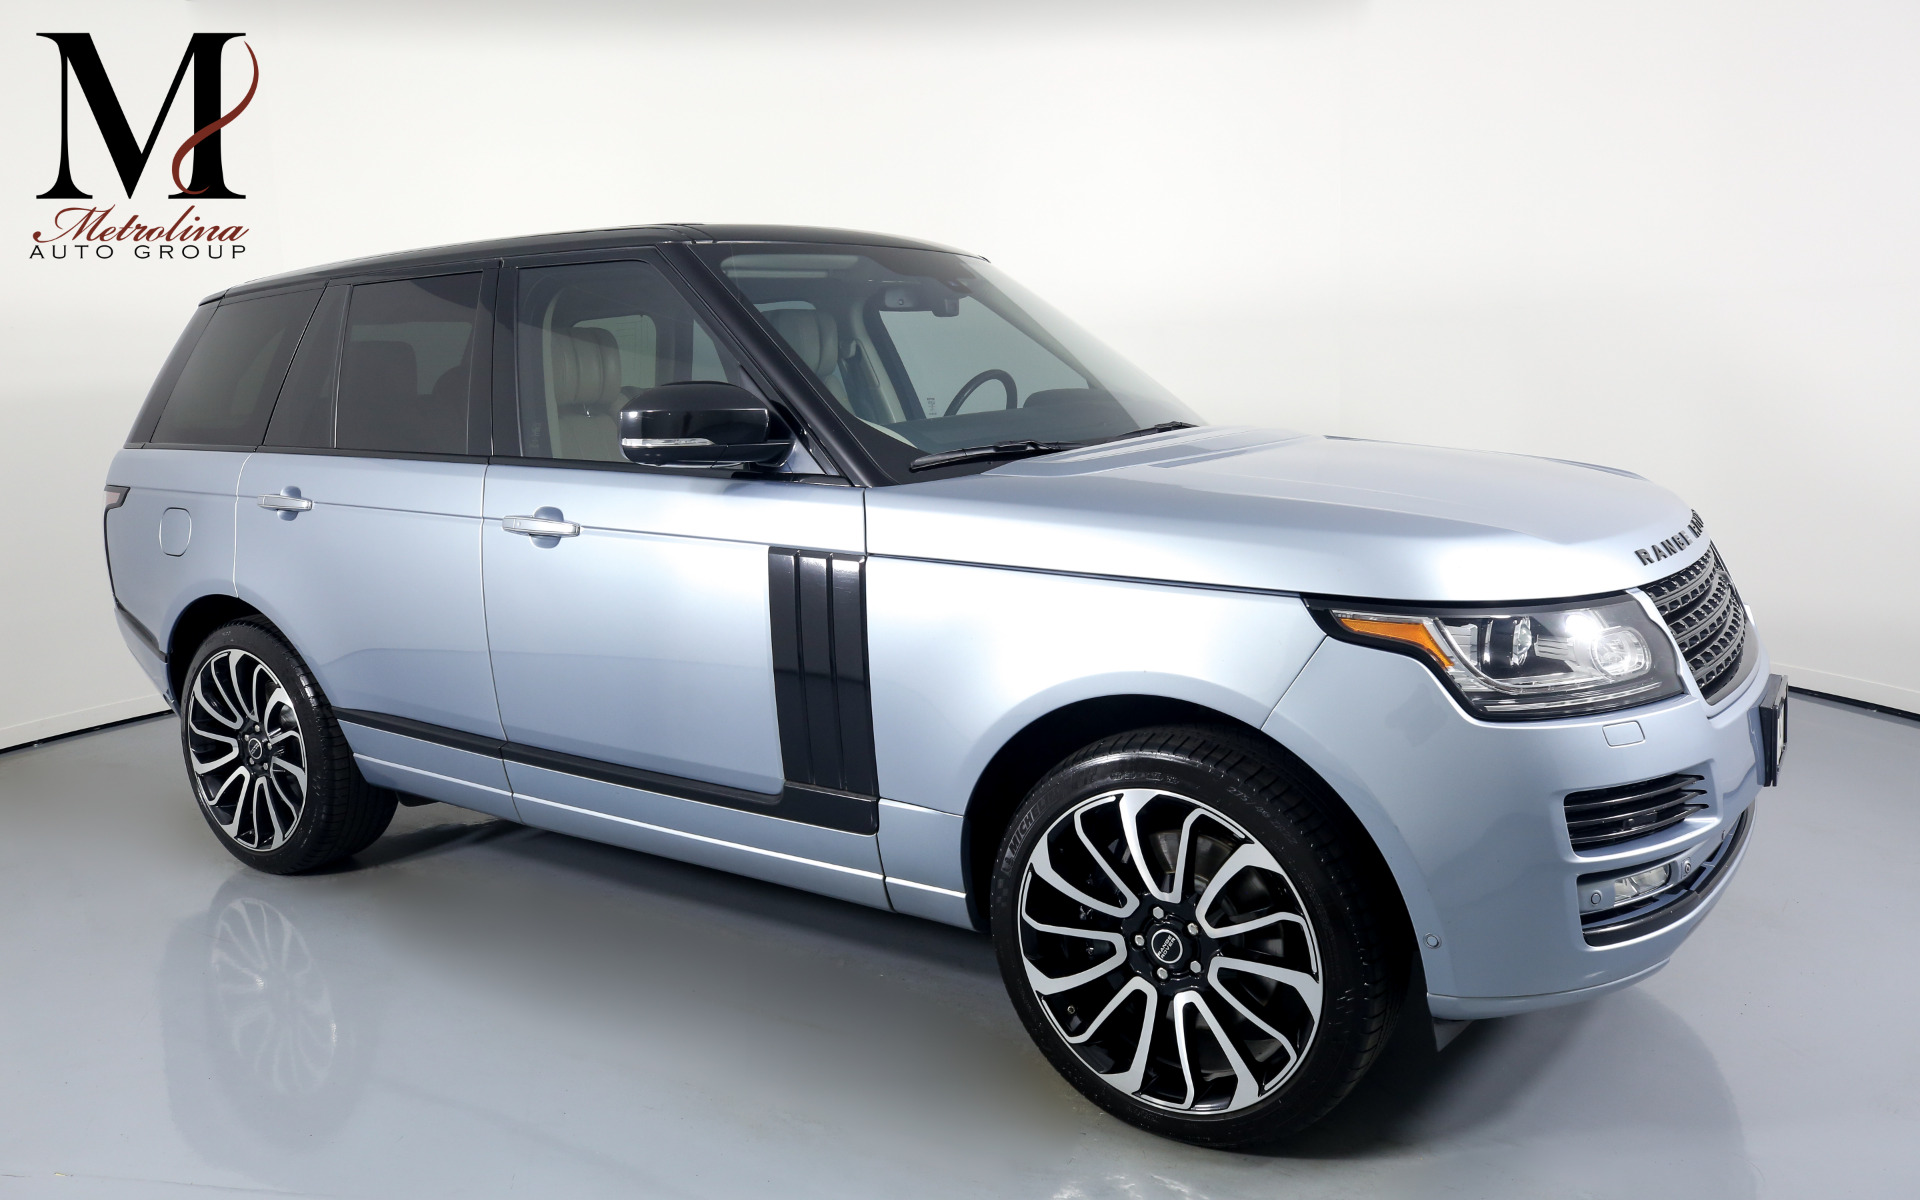 Used 2014 Land Rover Range Rover Autobiography for sale $53,996 at Metrolina Auto Group in Charlotte NC 28217 - 1